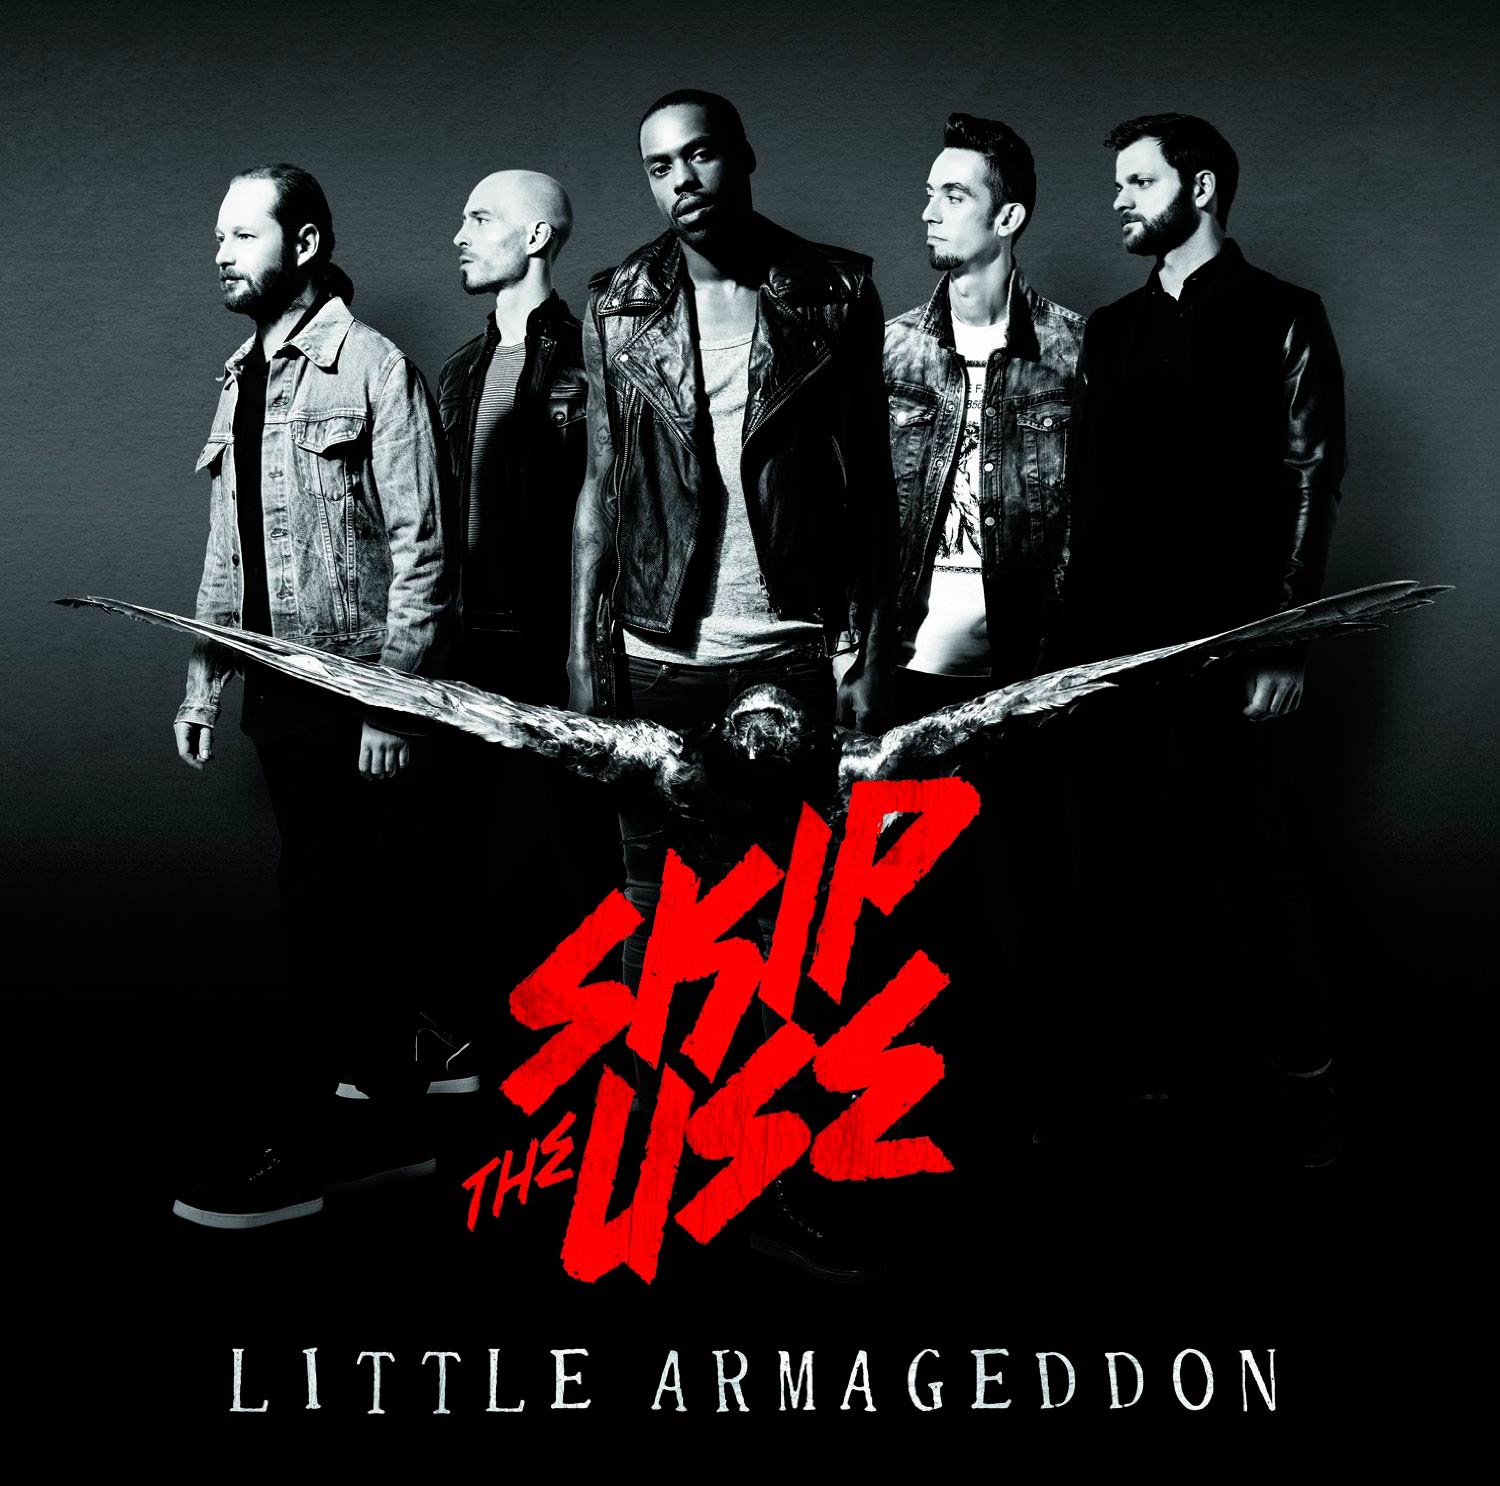 Portada del disco Little Armageddon de Skip the use